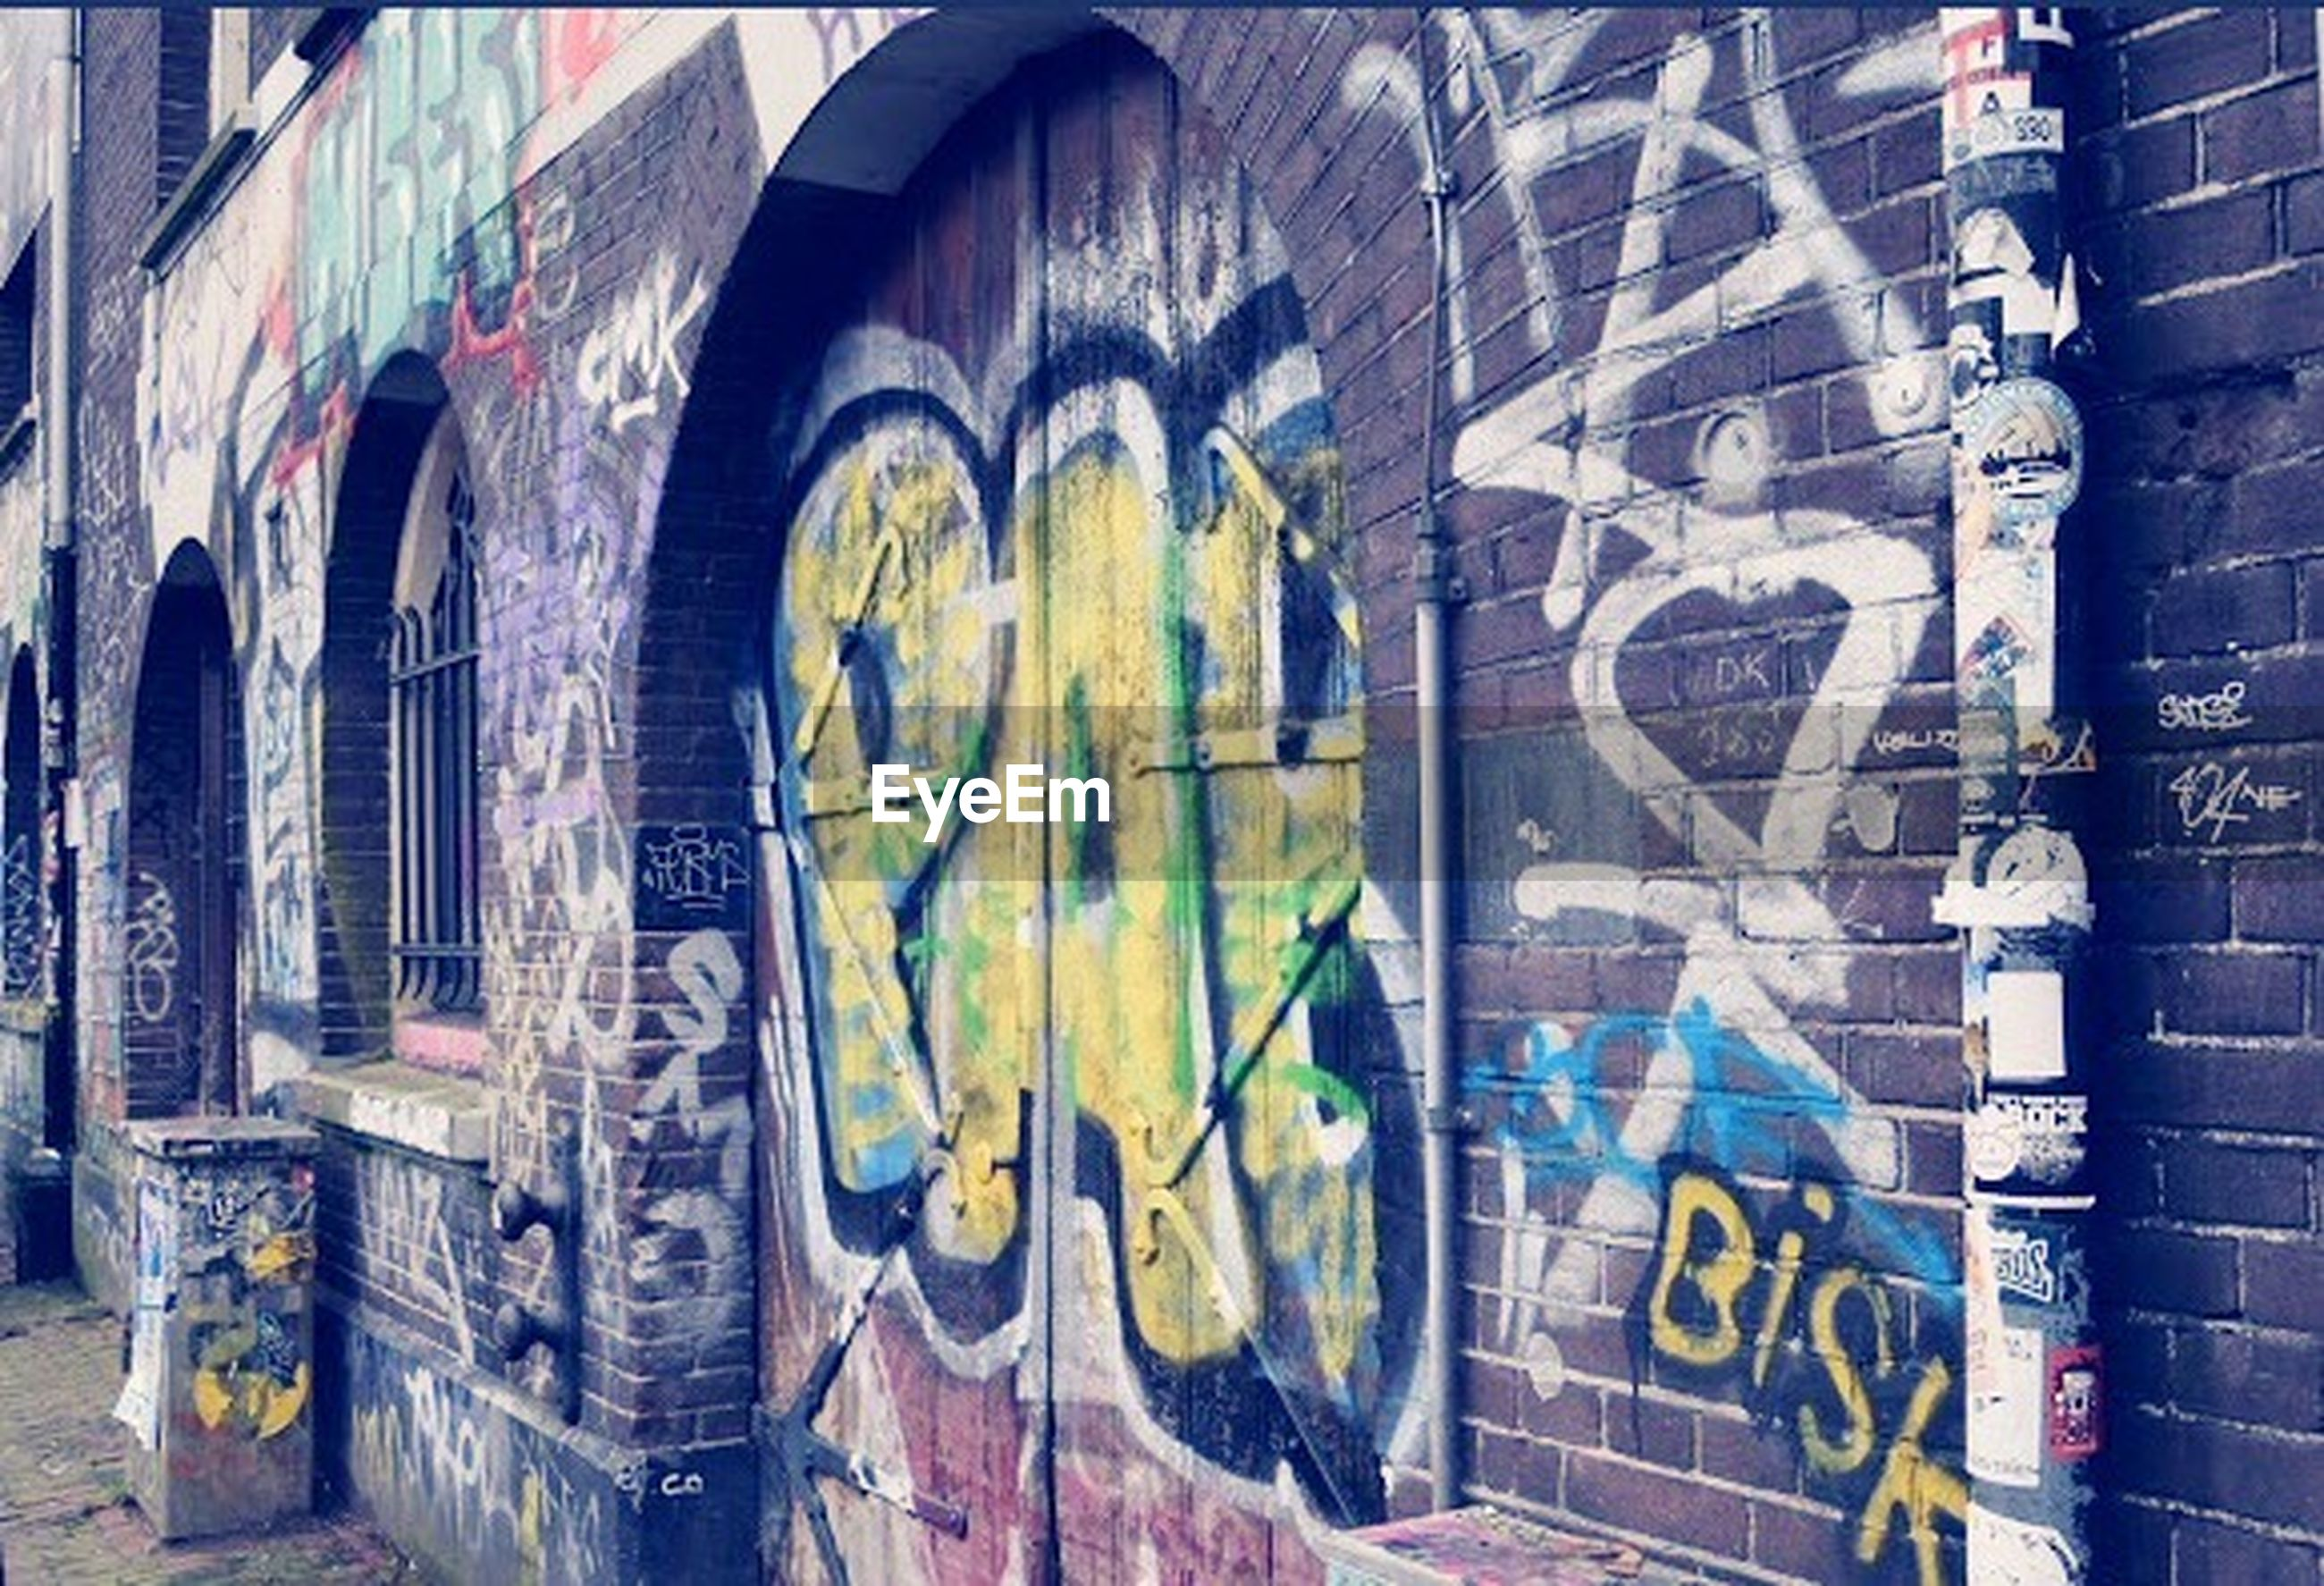 architecture, graffiti, built structure, building exterior, art and craft, art, creativity, wall - building feature, text, street art, arch, window, building, human representation, multi colored, day, wall, brick wall, mural, no people